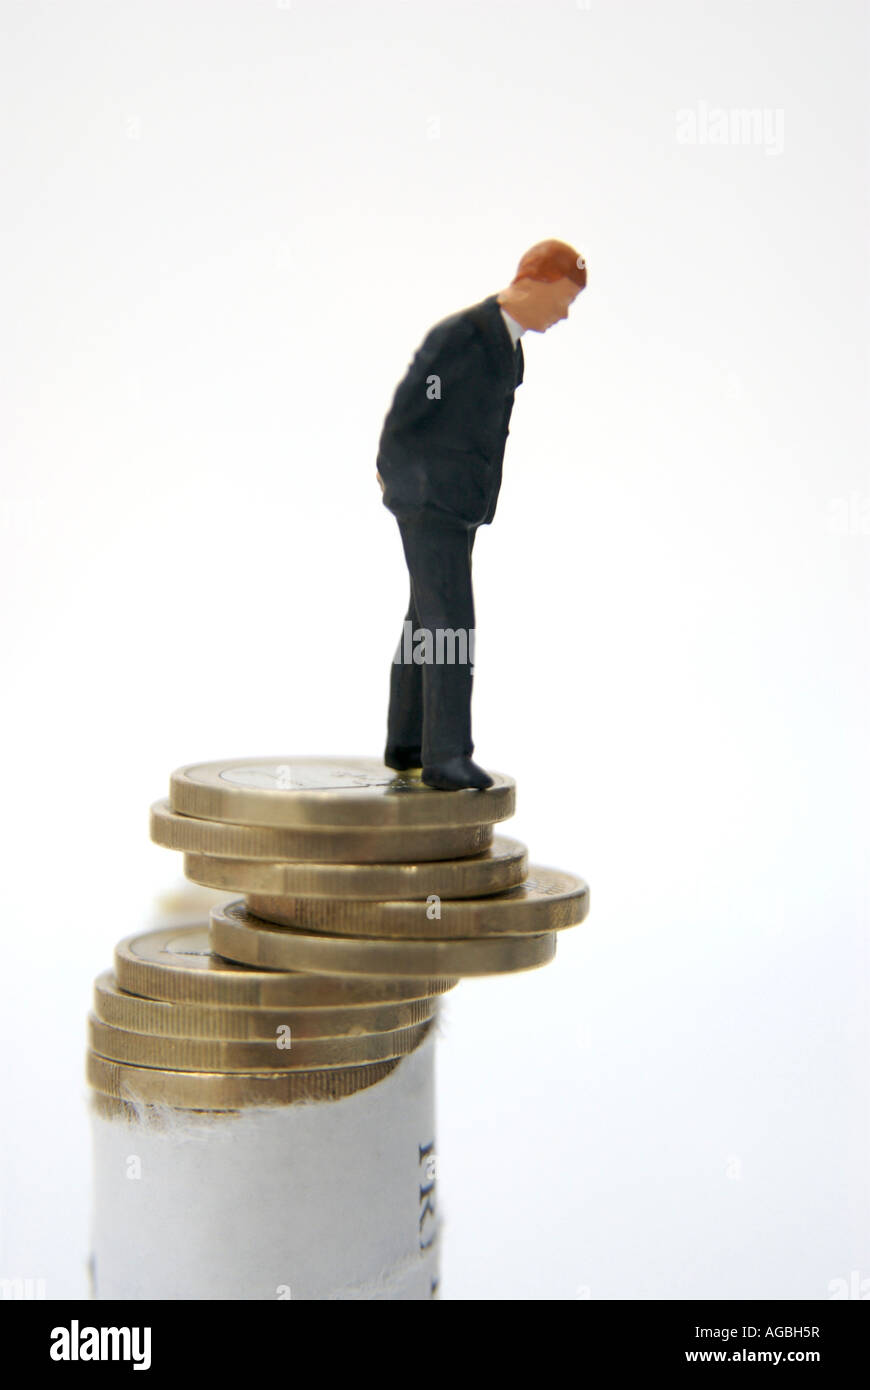 Businessman looking over the edge of a pile of euro coins - EU financial crisis / economic collapse / instability - Stock Image